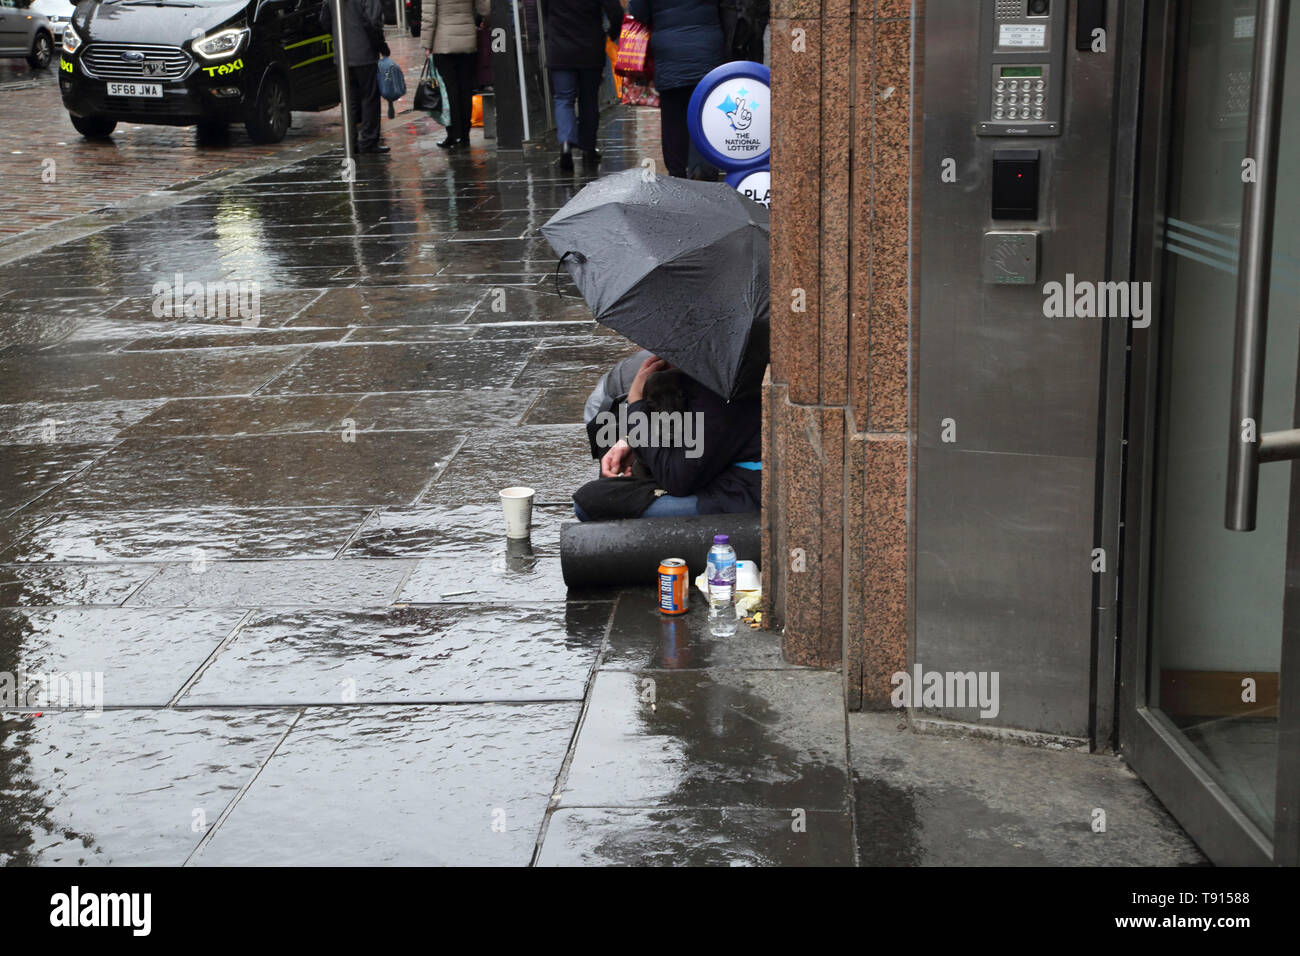 Glasgow Scotland Homeless Woman with her Staffordshire Bull Terrier Dog in the Rain - Stock Image